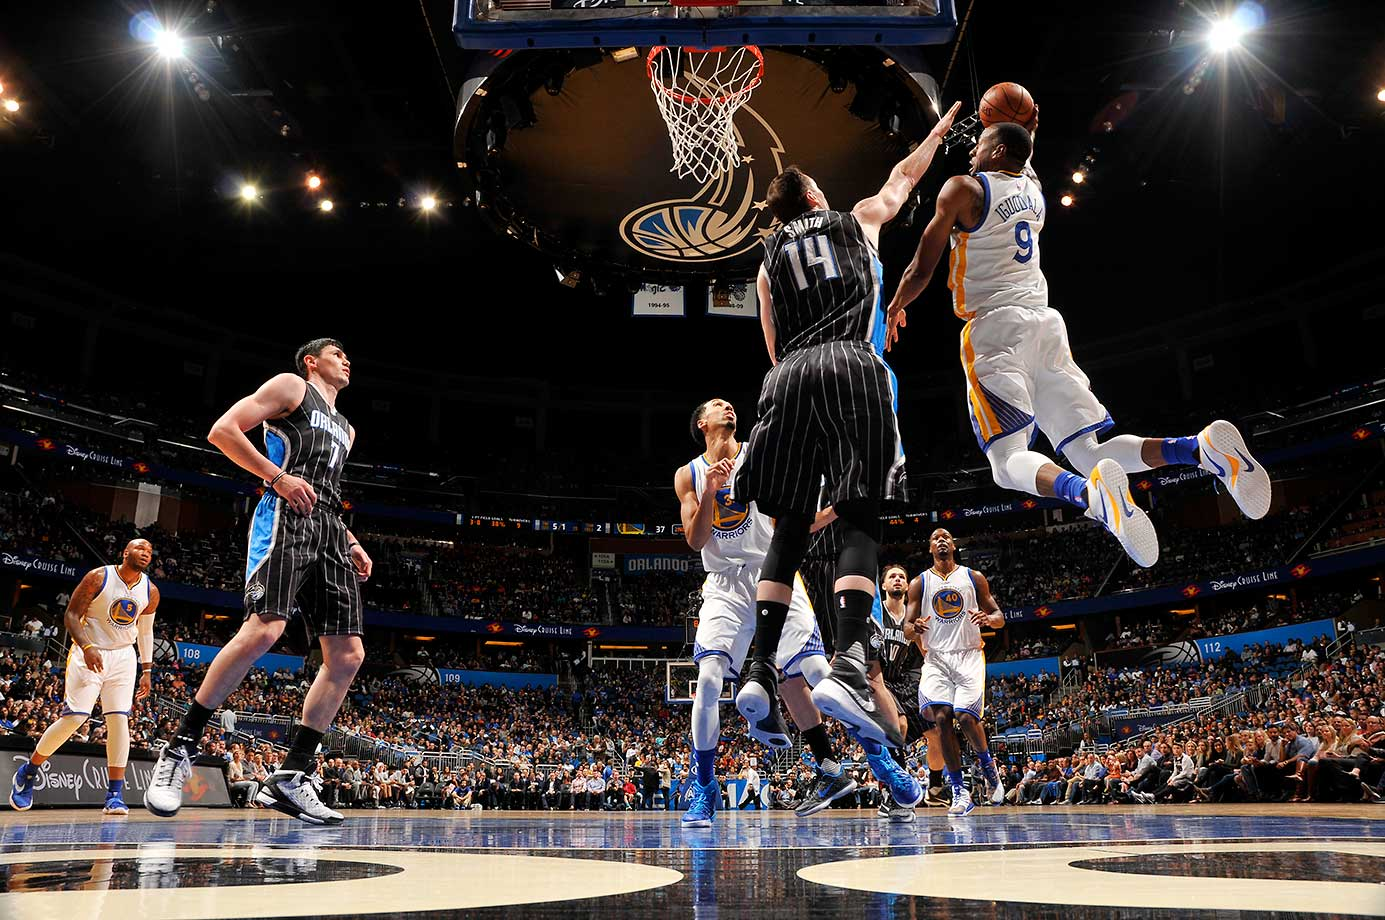 Andre Iguodala of Golden State goes to the basket against Jason Smith of Orlando.